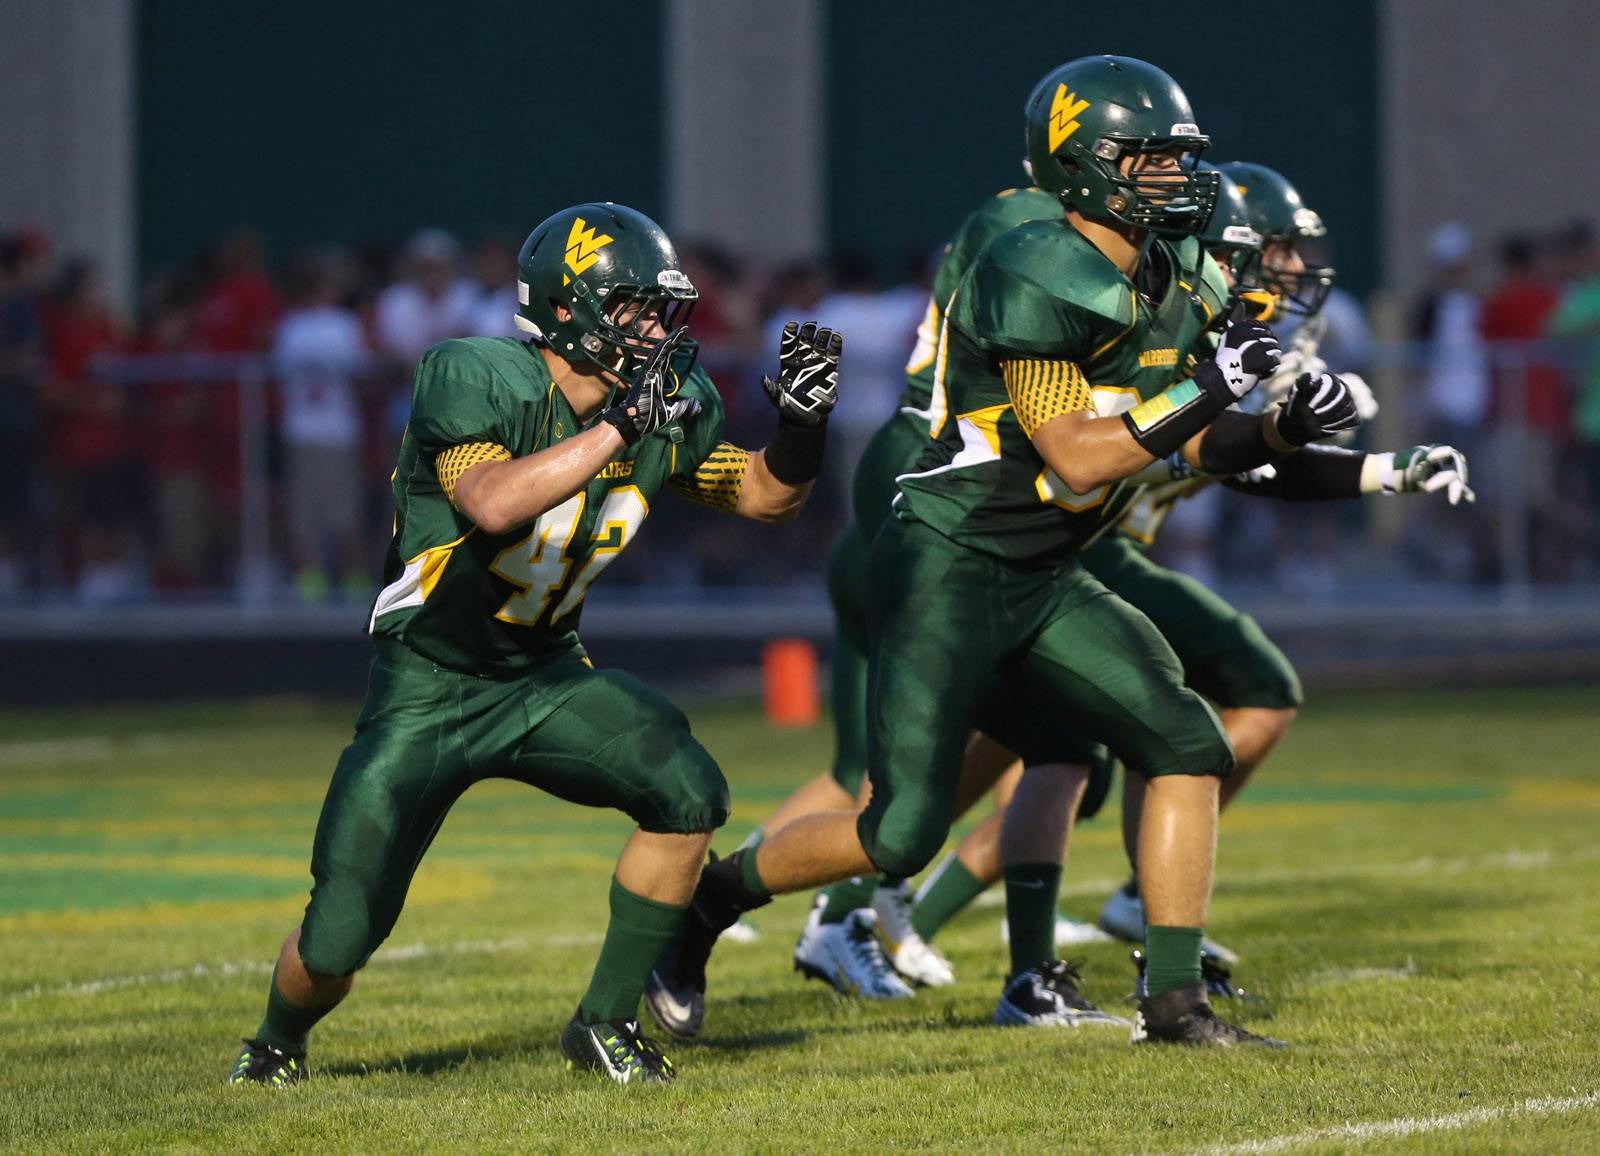 Week -1- Photos from the Naperville Central at Waubonsie Valley football game on Friday, Aug. 29 in Aurora.